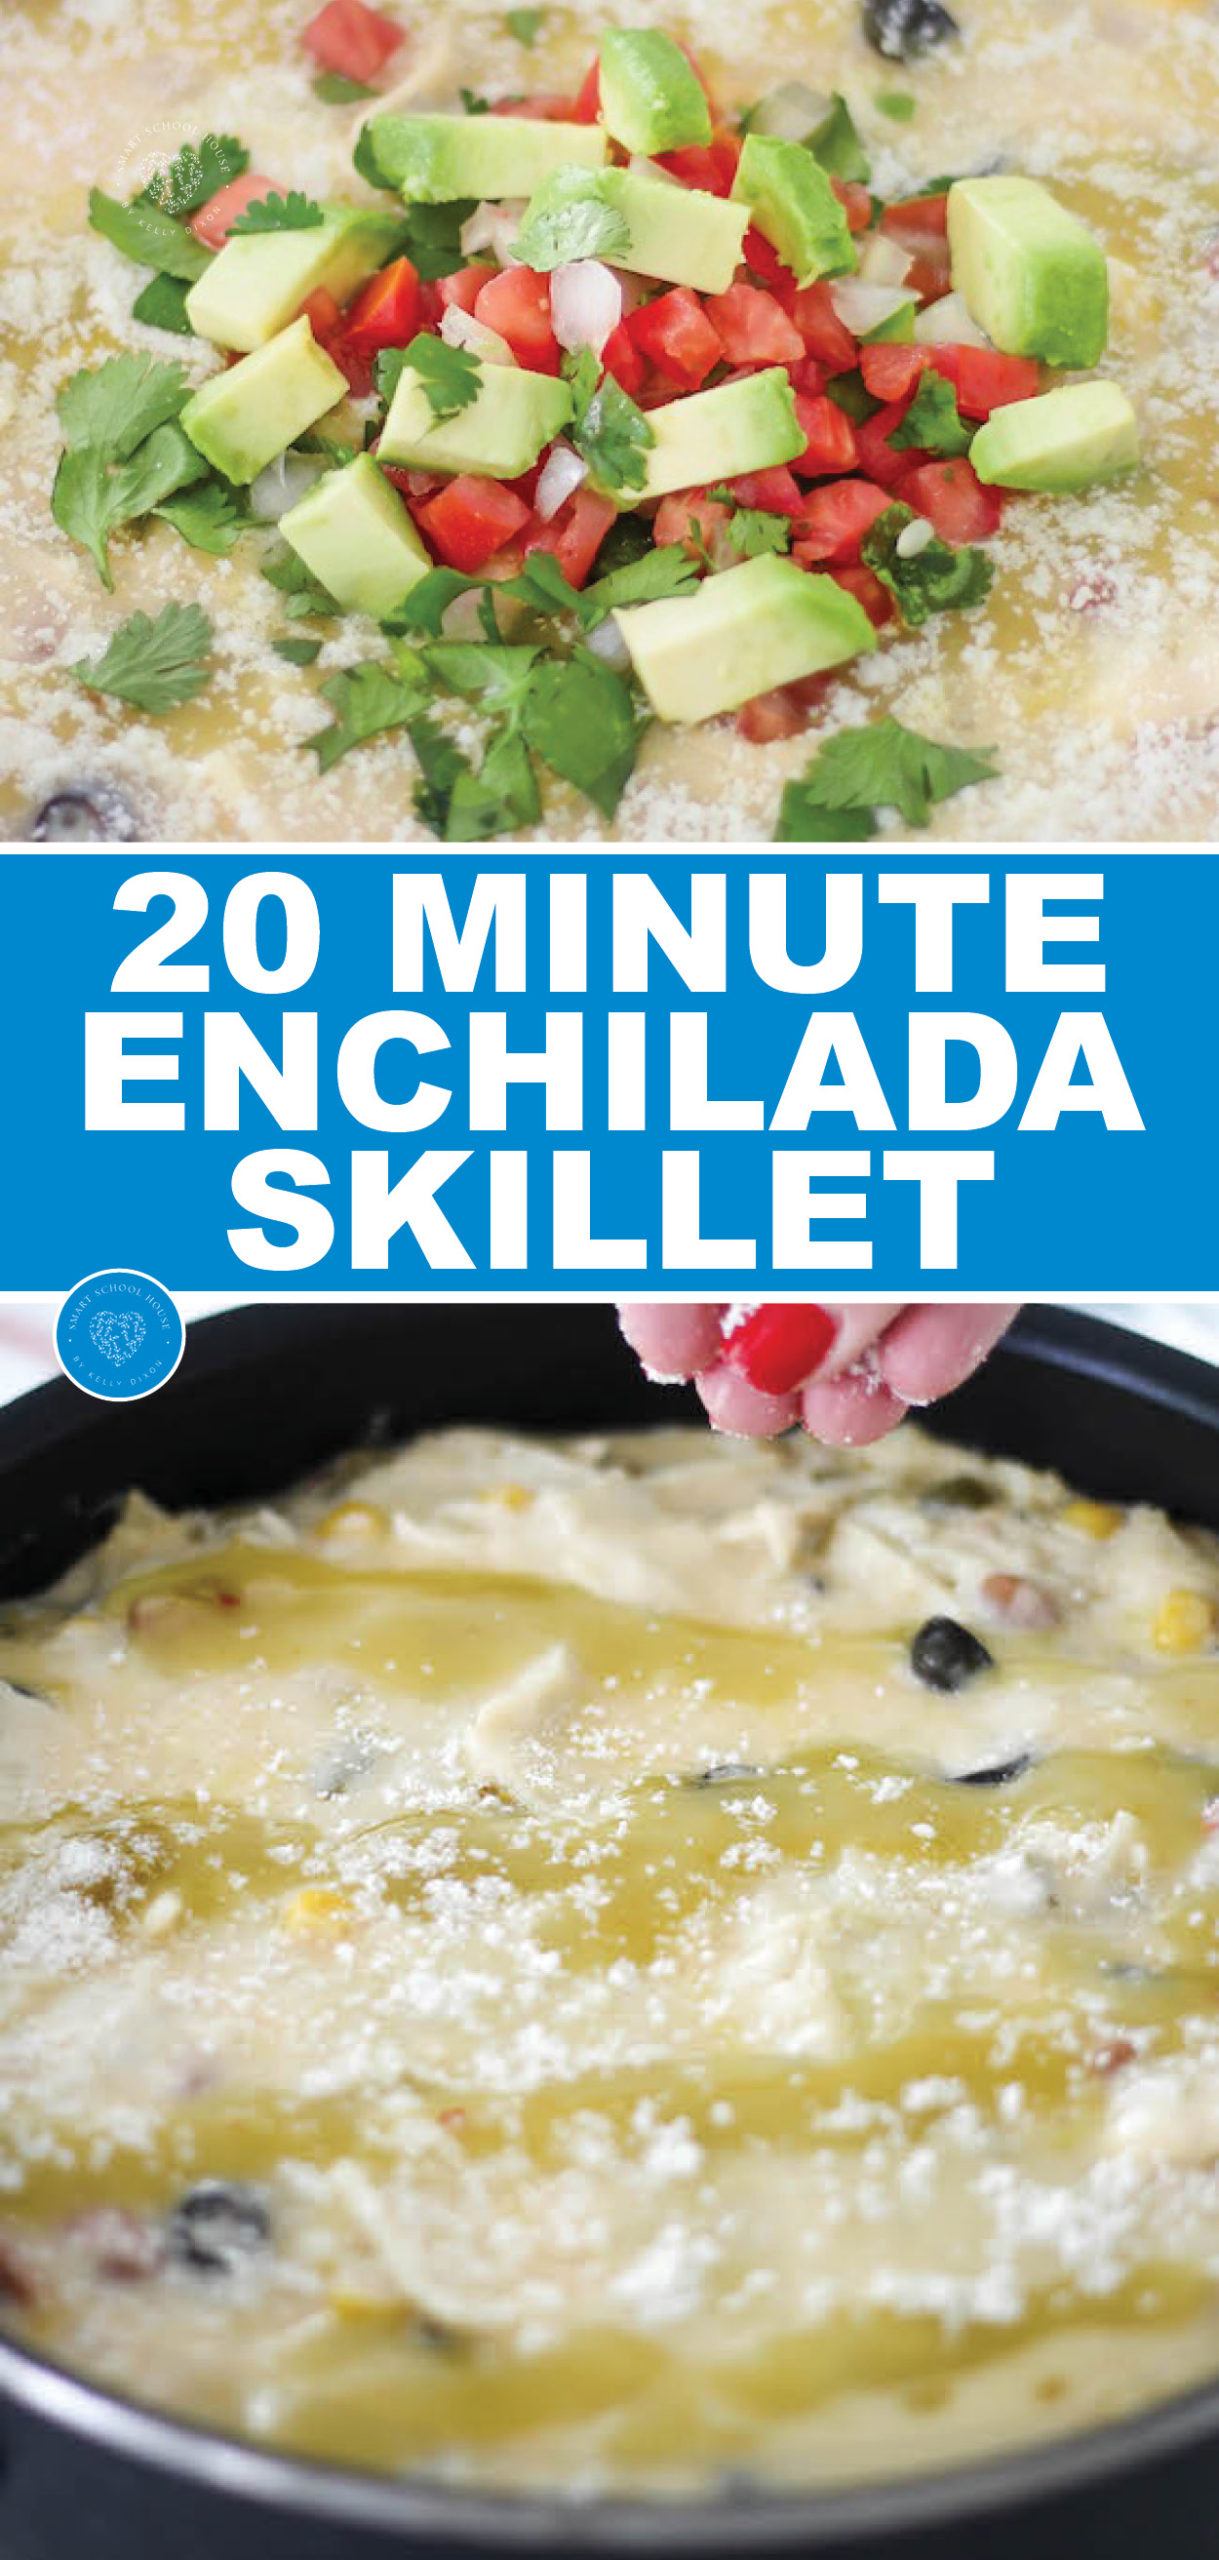 20 Creamy Chicken Enchilada Skillet Recipe. Quickly make a delicious chicken dinner in one pan! #skillet #enchiladas #enchiladarecipe #creamyenchiladas #onepandinner #quickdinner #easydinner